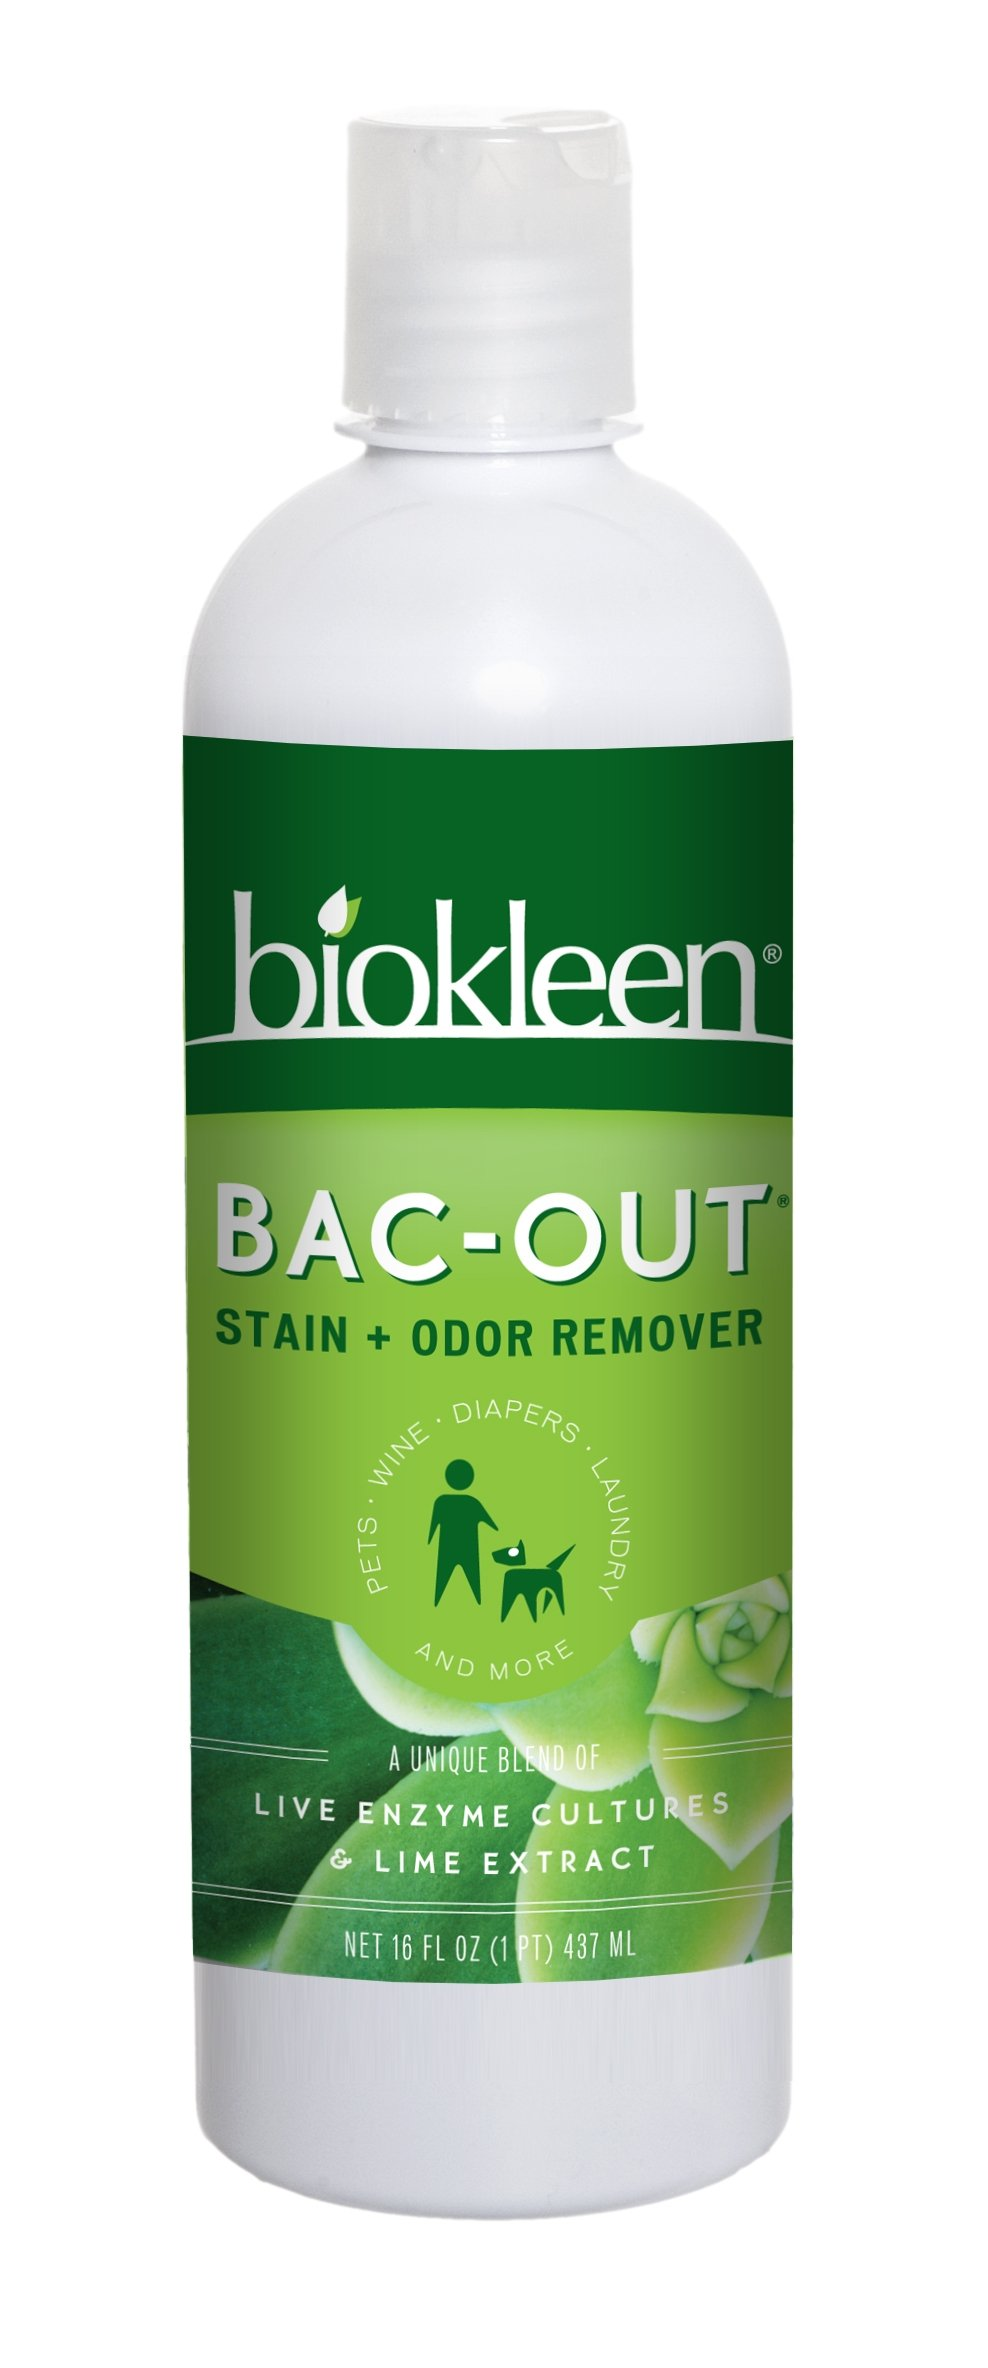 Biokleen Bac-Out Stain+Odor Remover, Destroys Stains & Odors Safely, for Pet Stains, Laundry, Diapers, Wine, Carpets, & More, Eco-Friendly, Non-Toxic, Plant-Based, 16 Ounces (Pack of 12)